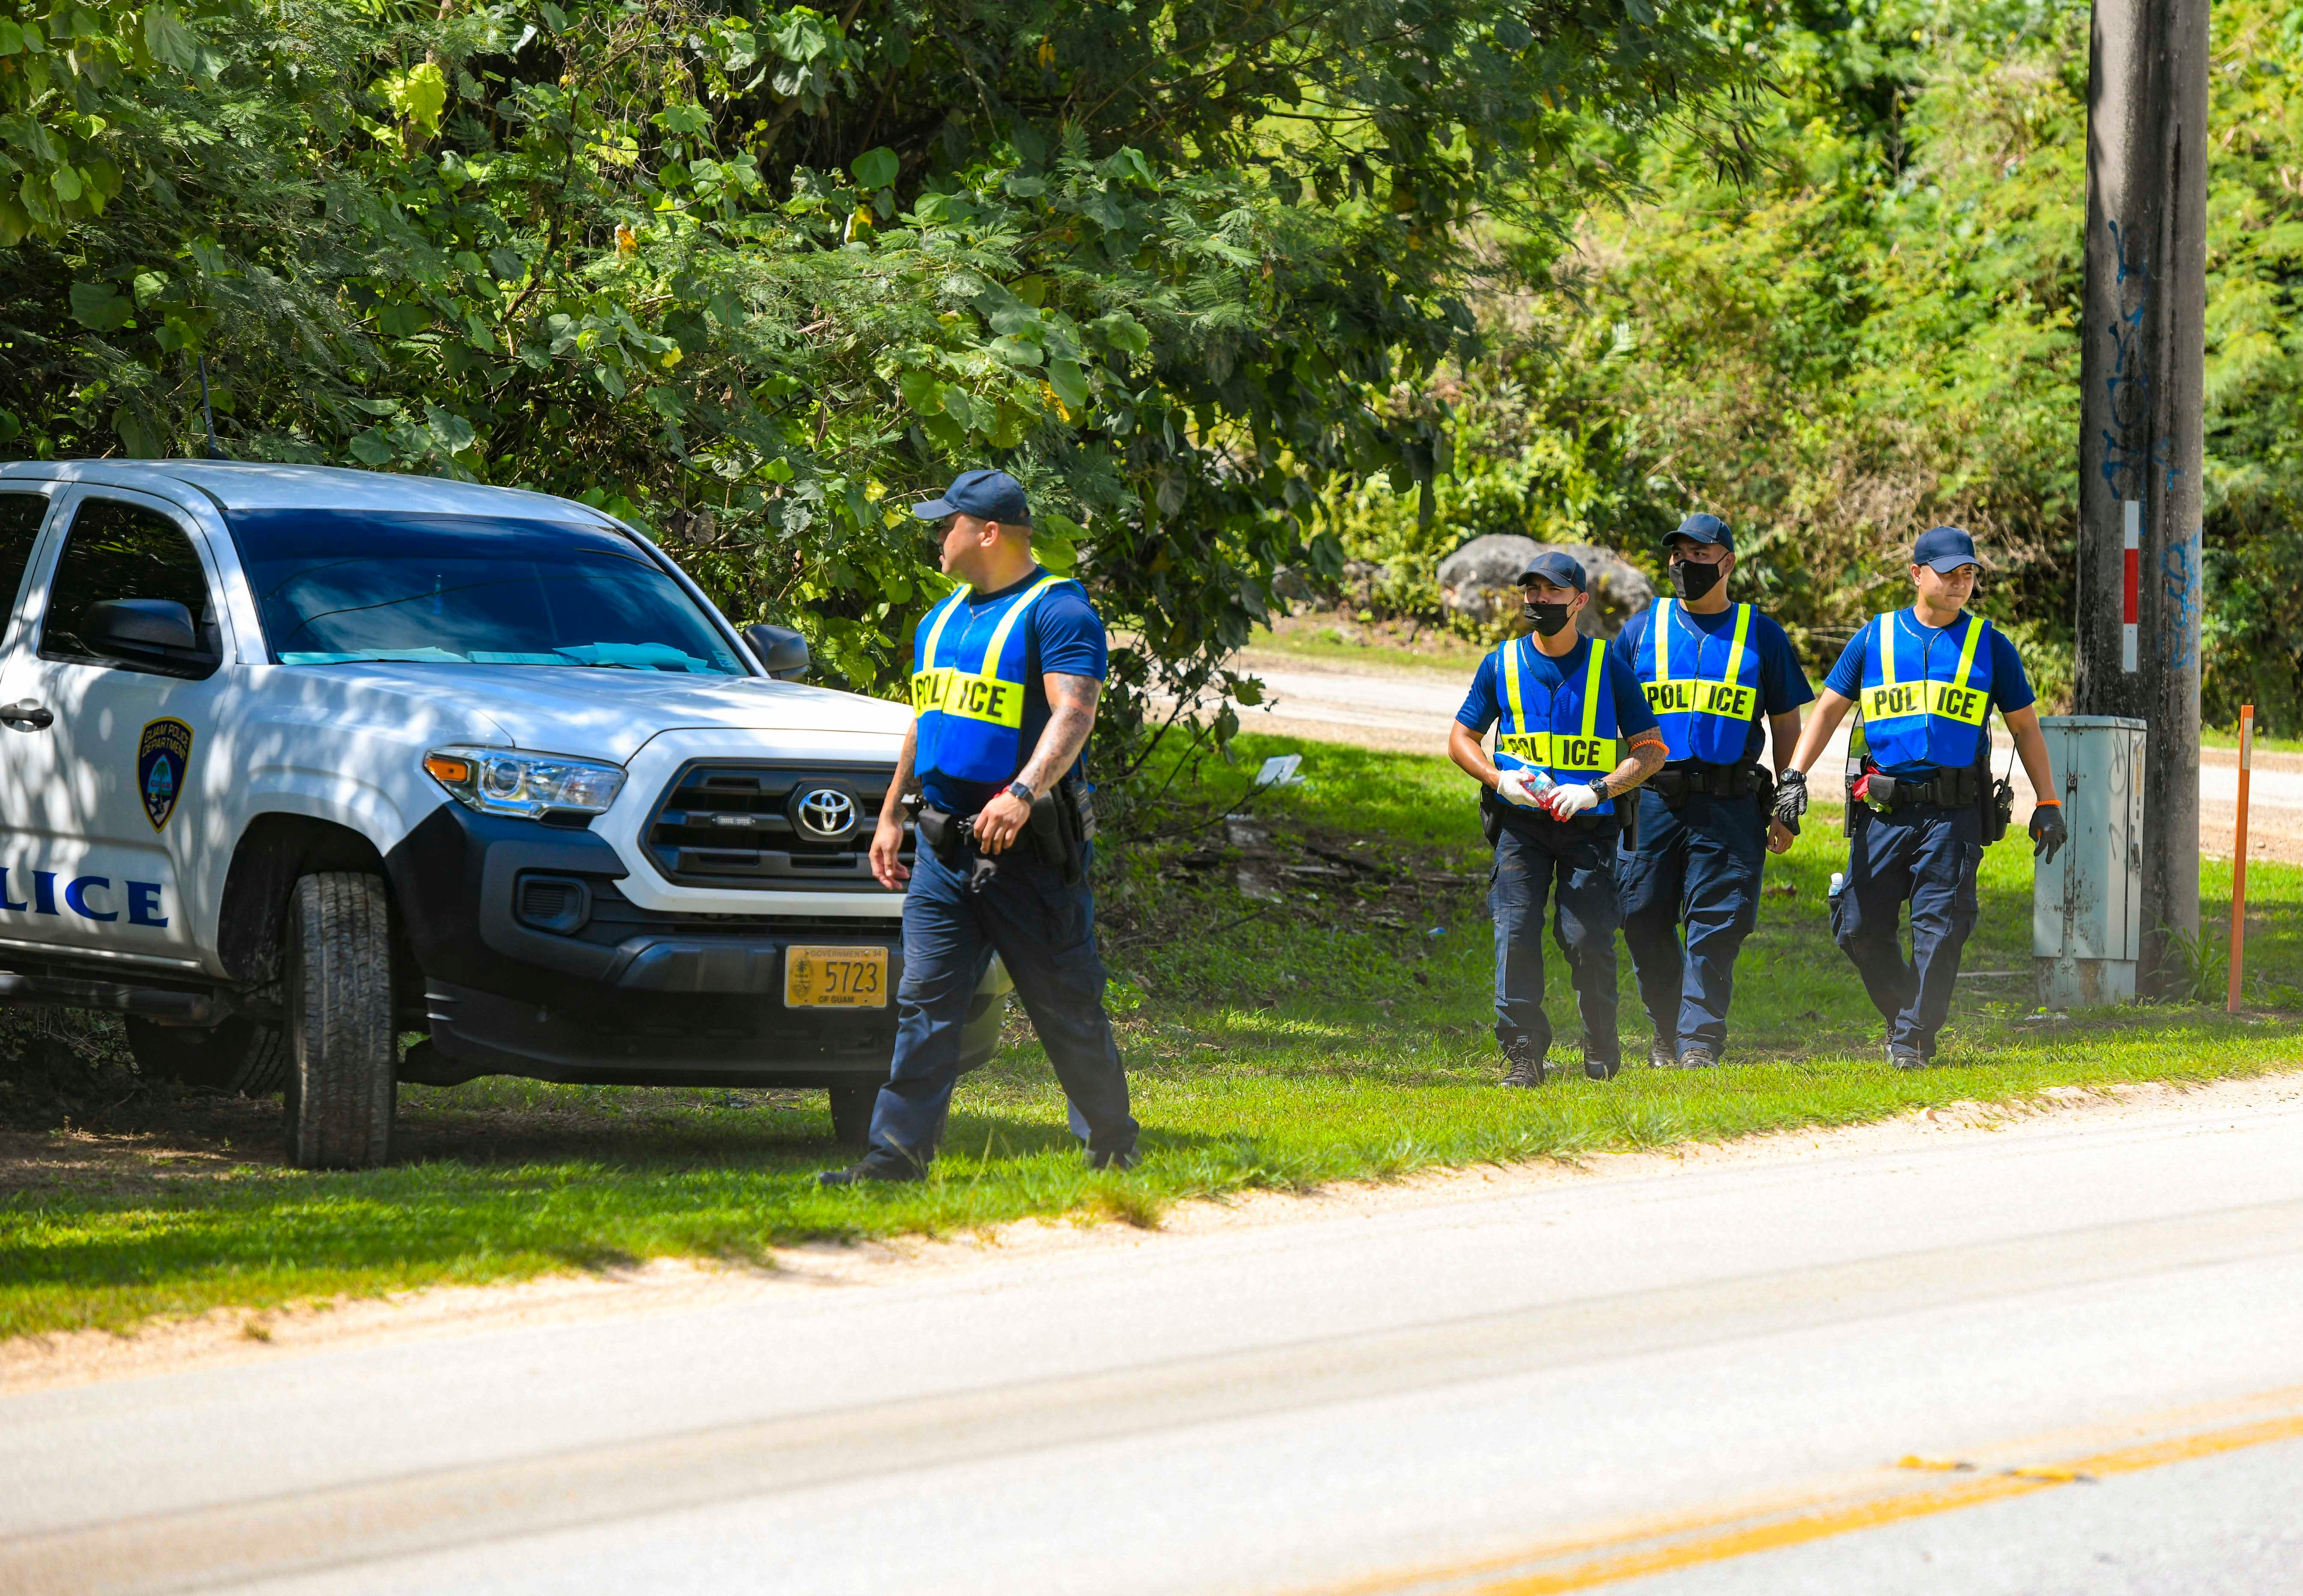 A group of police officer trainees call out to Fernando Canlas as they search for the man, along Route 15 in Yigo, on Friday, April 9, 2021. A search for Canlas was initiated by family members, emergency responders, friends and rescue volunteers the day before, after he was reported missing.